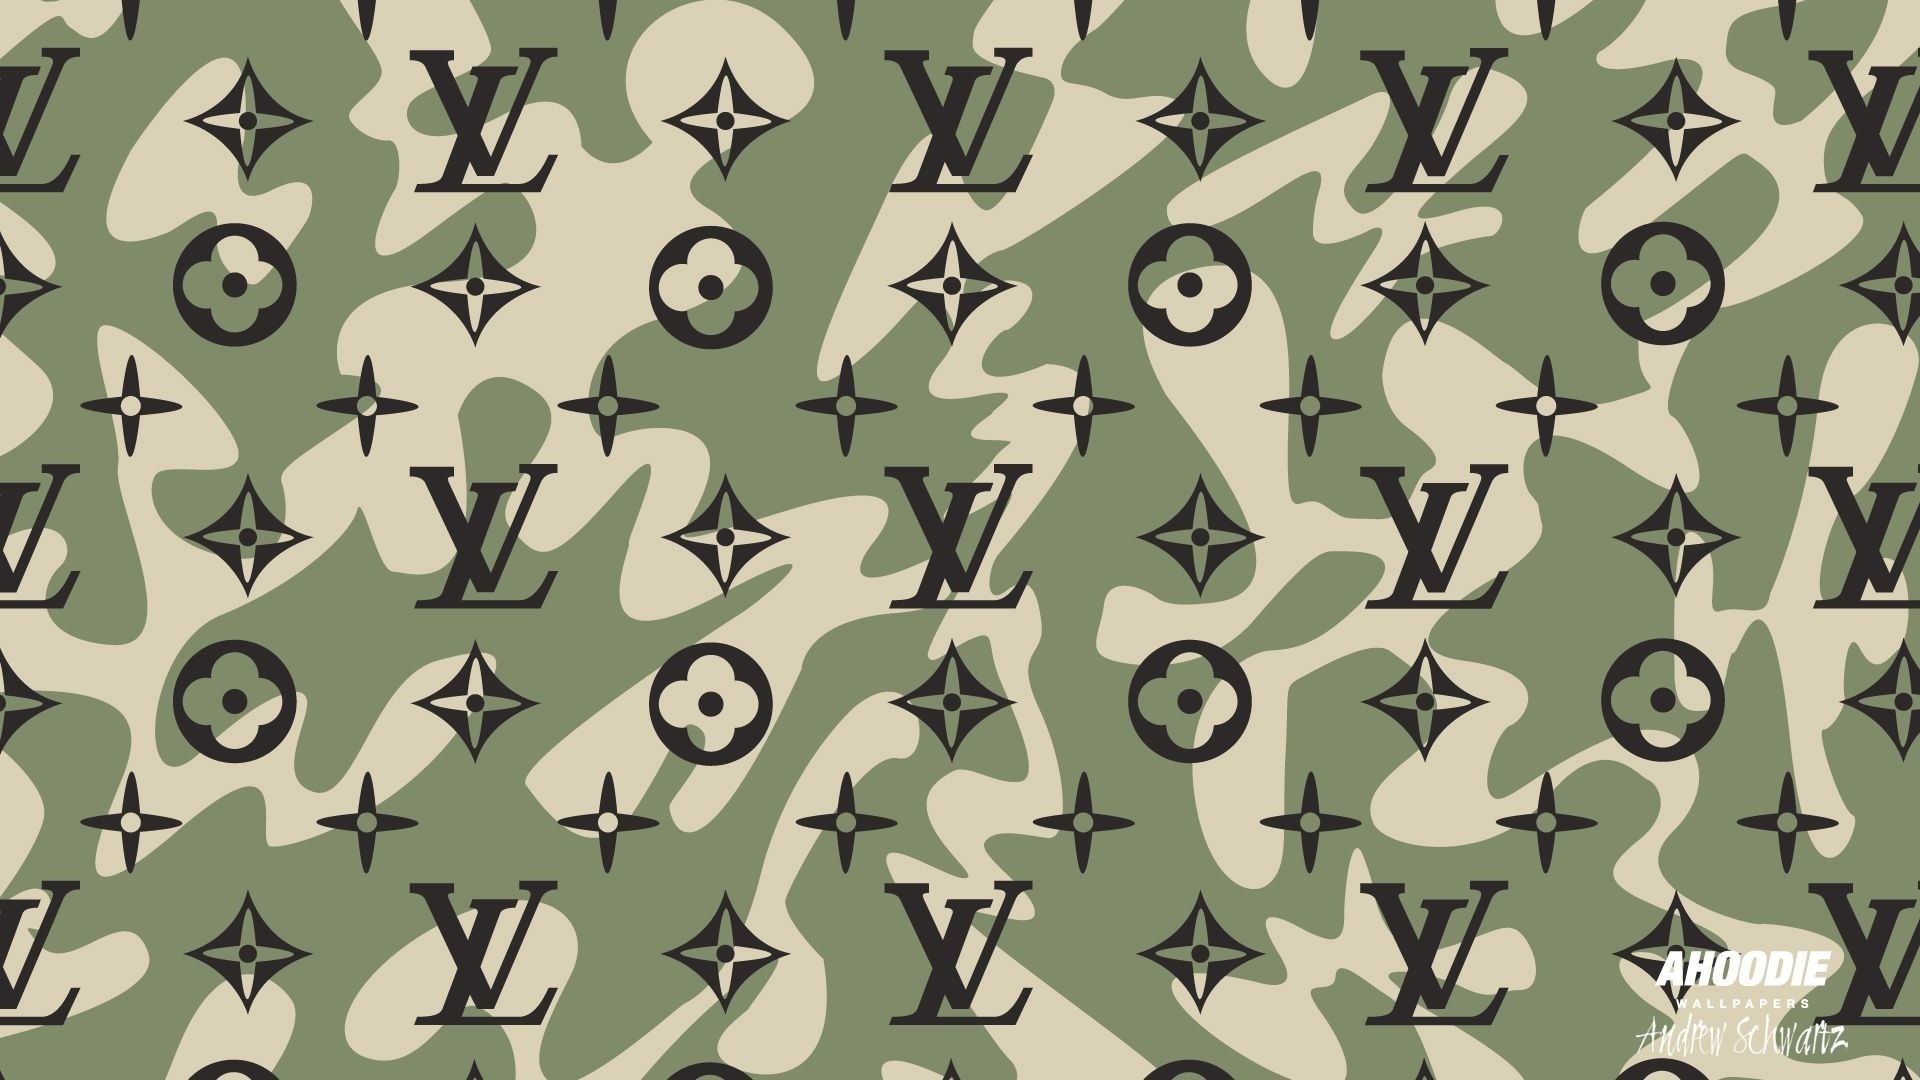 Res: 1920x1080, bathing ape wallpaper #214784